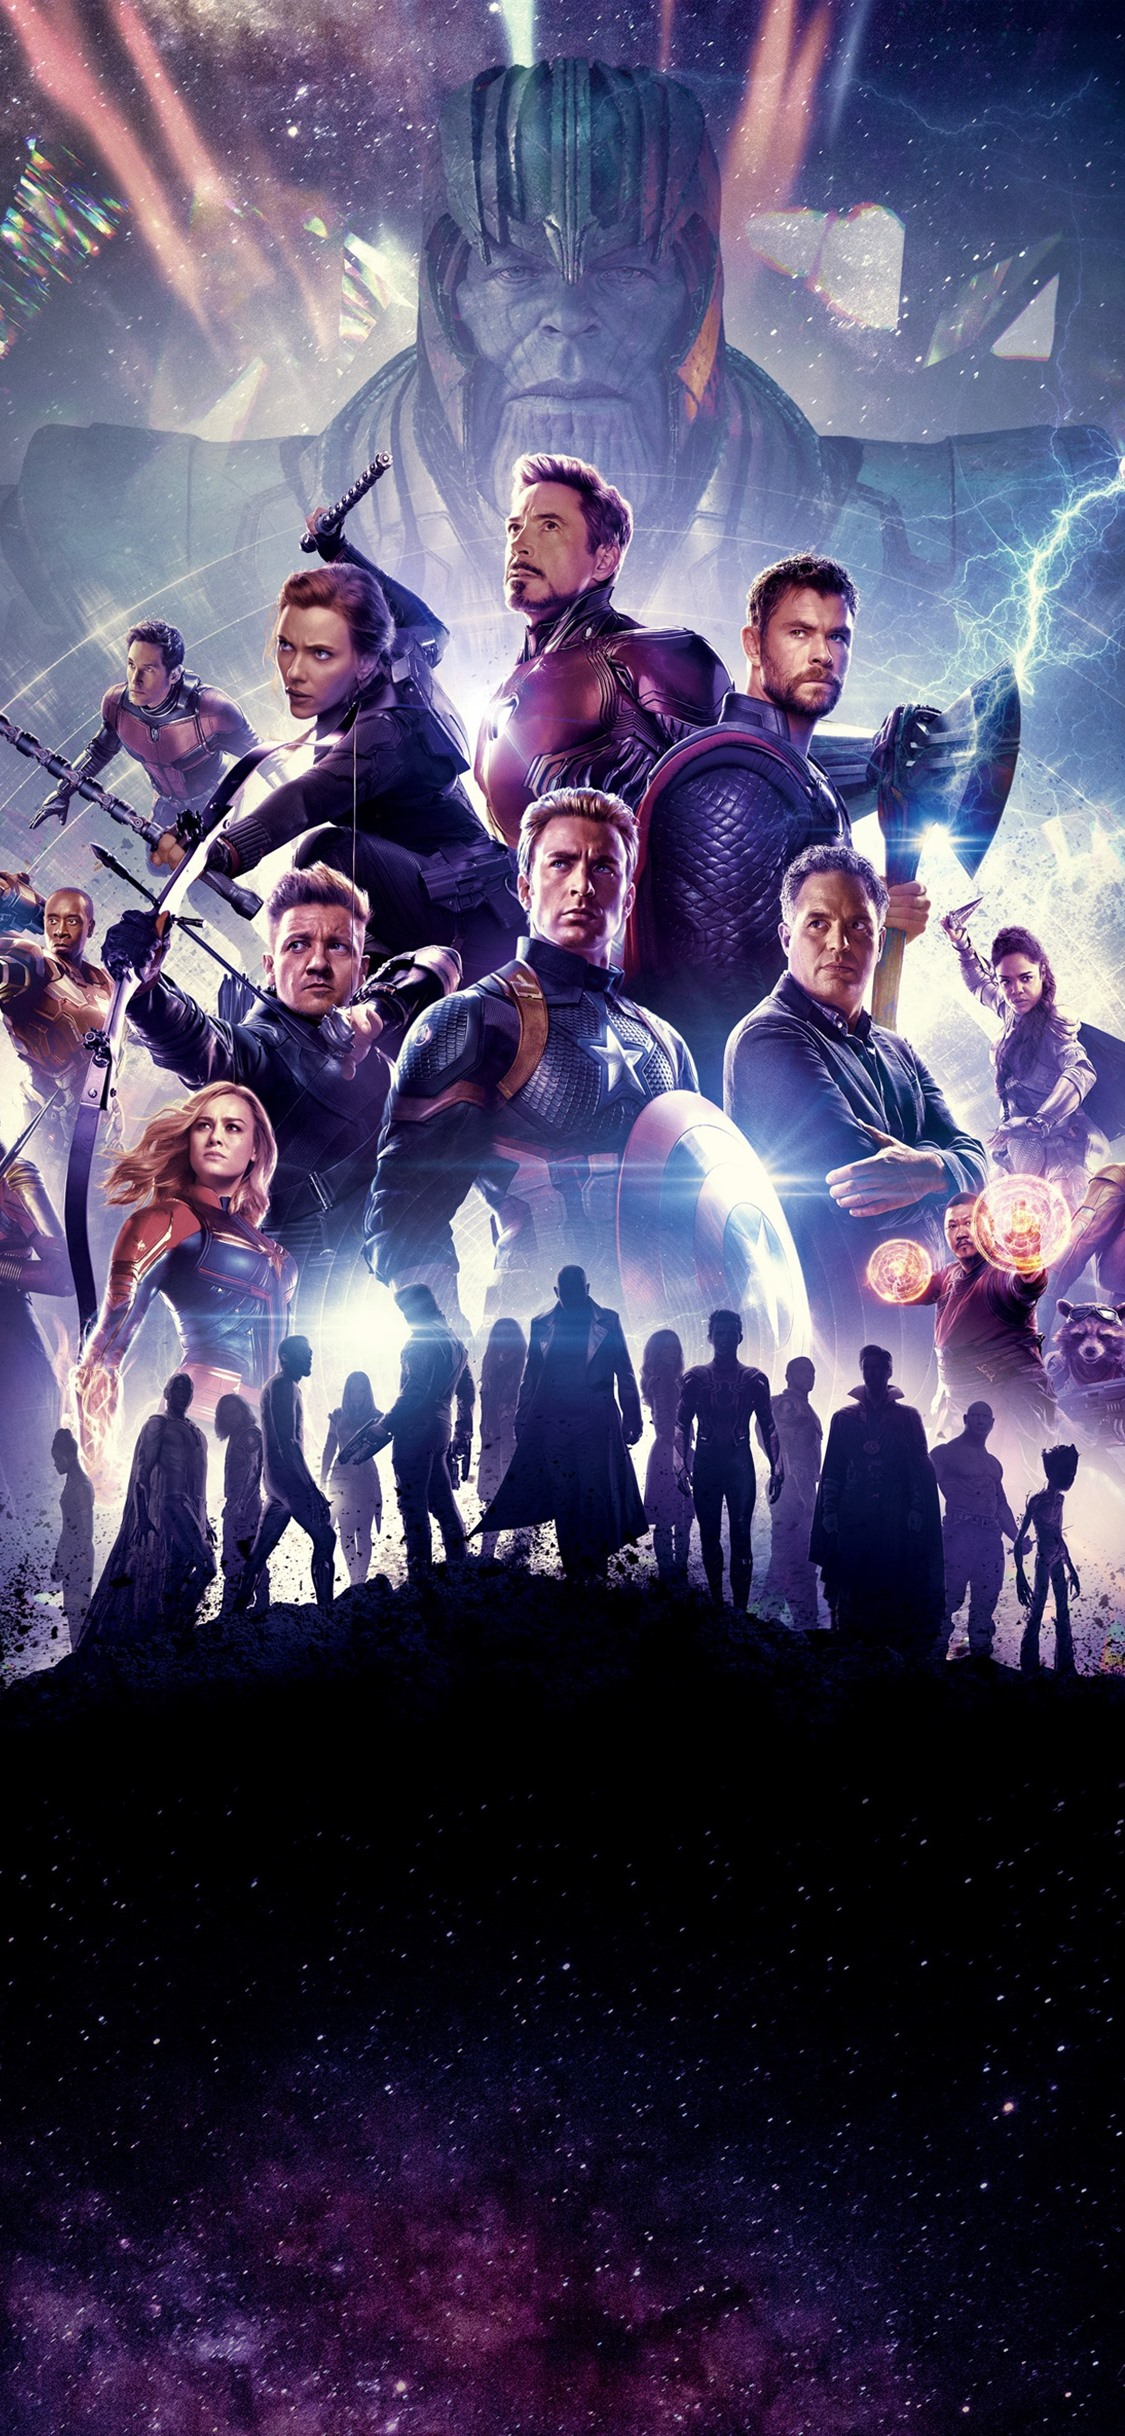 2019 Movie Avengers 4 Endgame Marvel Superheroes 1242x2688 Iphone 11 Pro Xs Max Wallpaper Background Picture Image